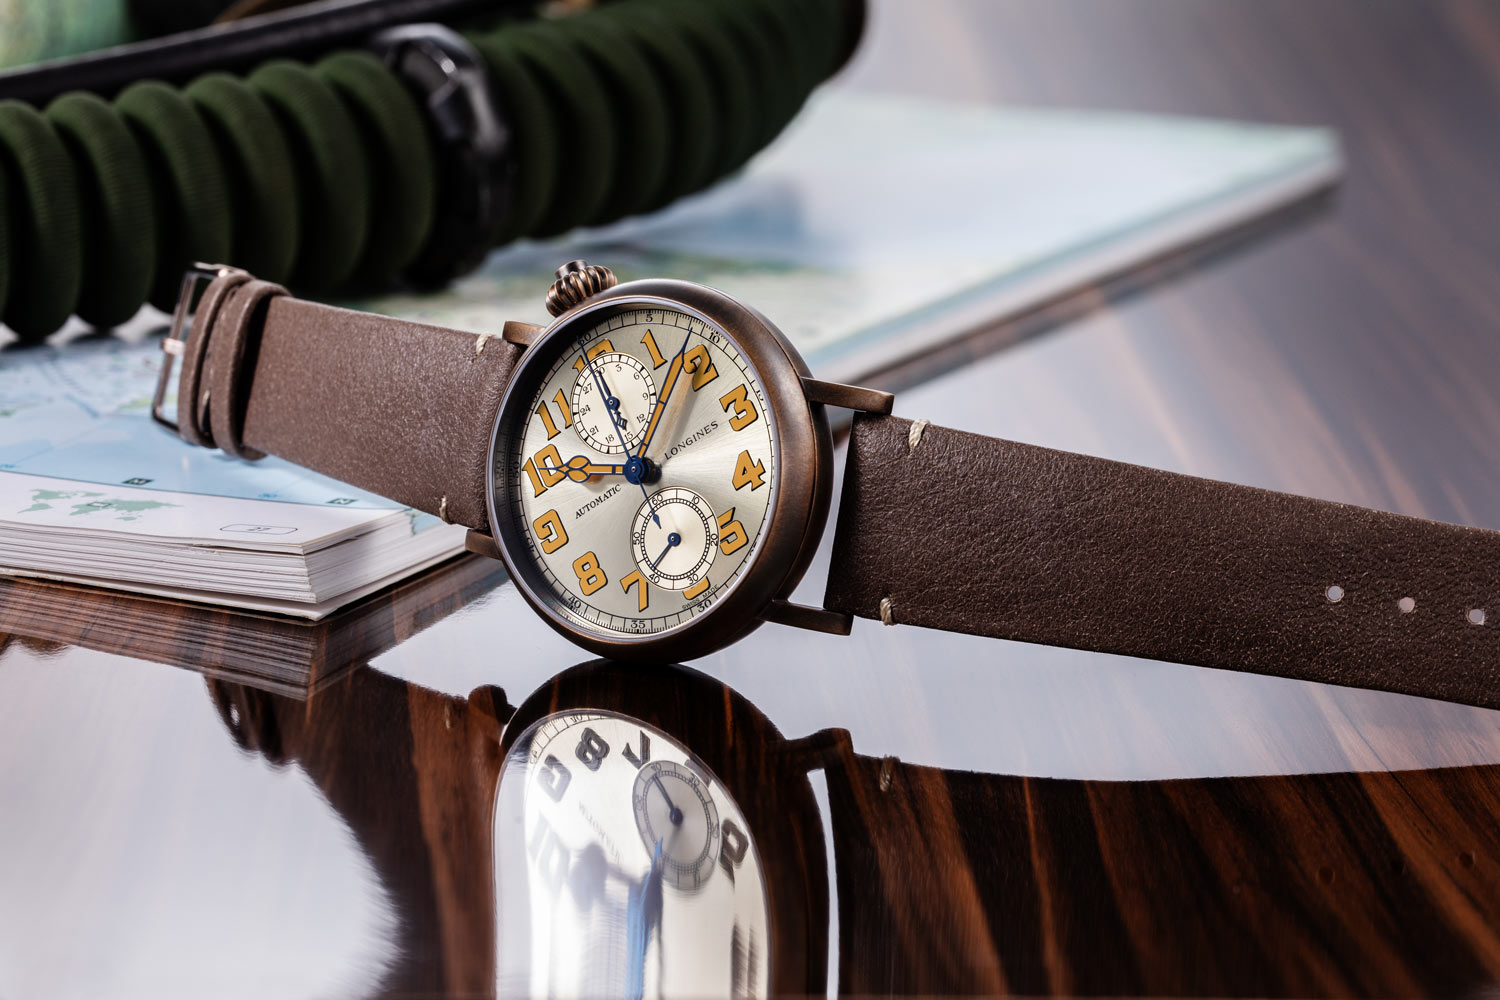 Longines Avigation Watch Type A-7 1935 – The Hour Glass Limited Edition